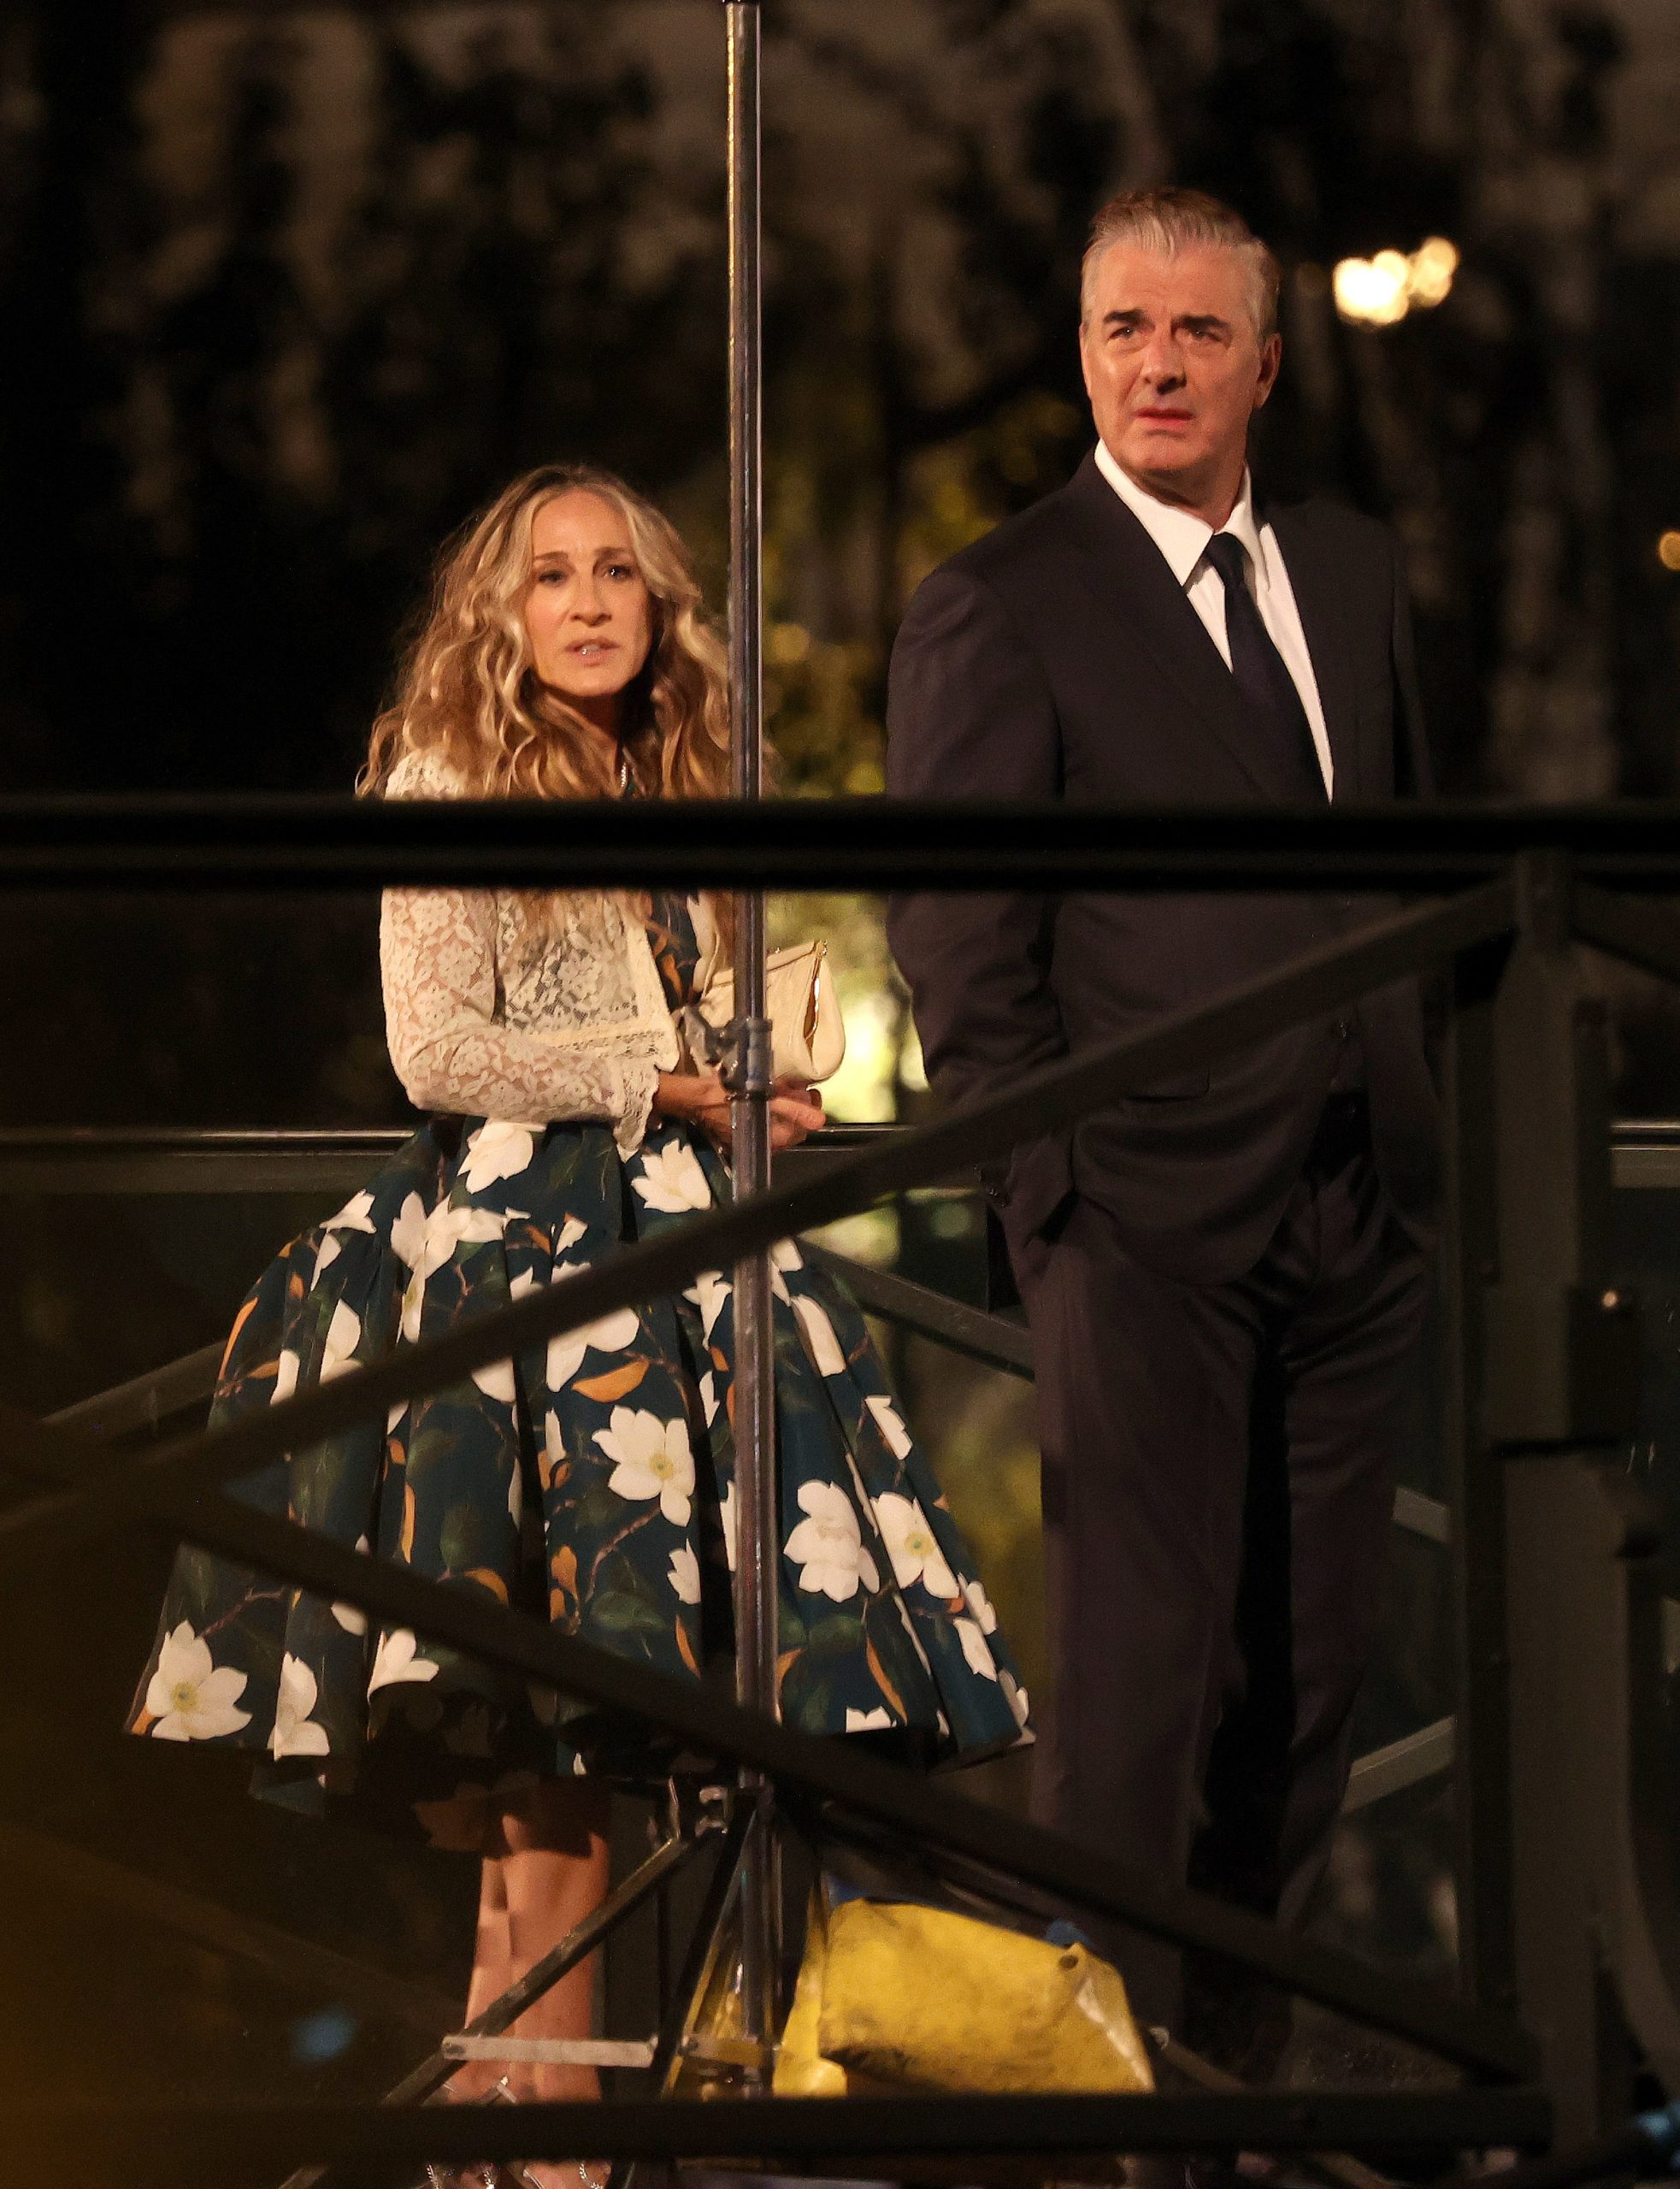 Carrie and Big Are Back In PARISSSS!